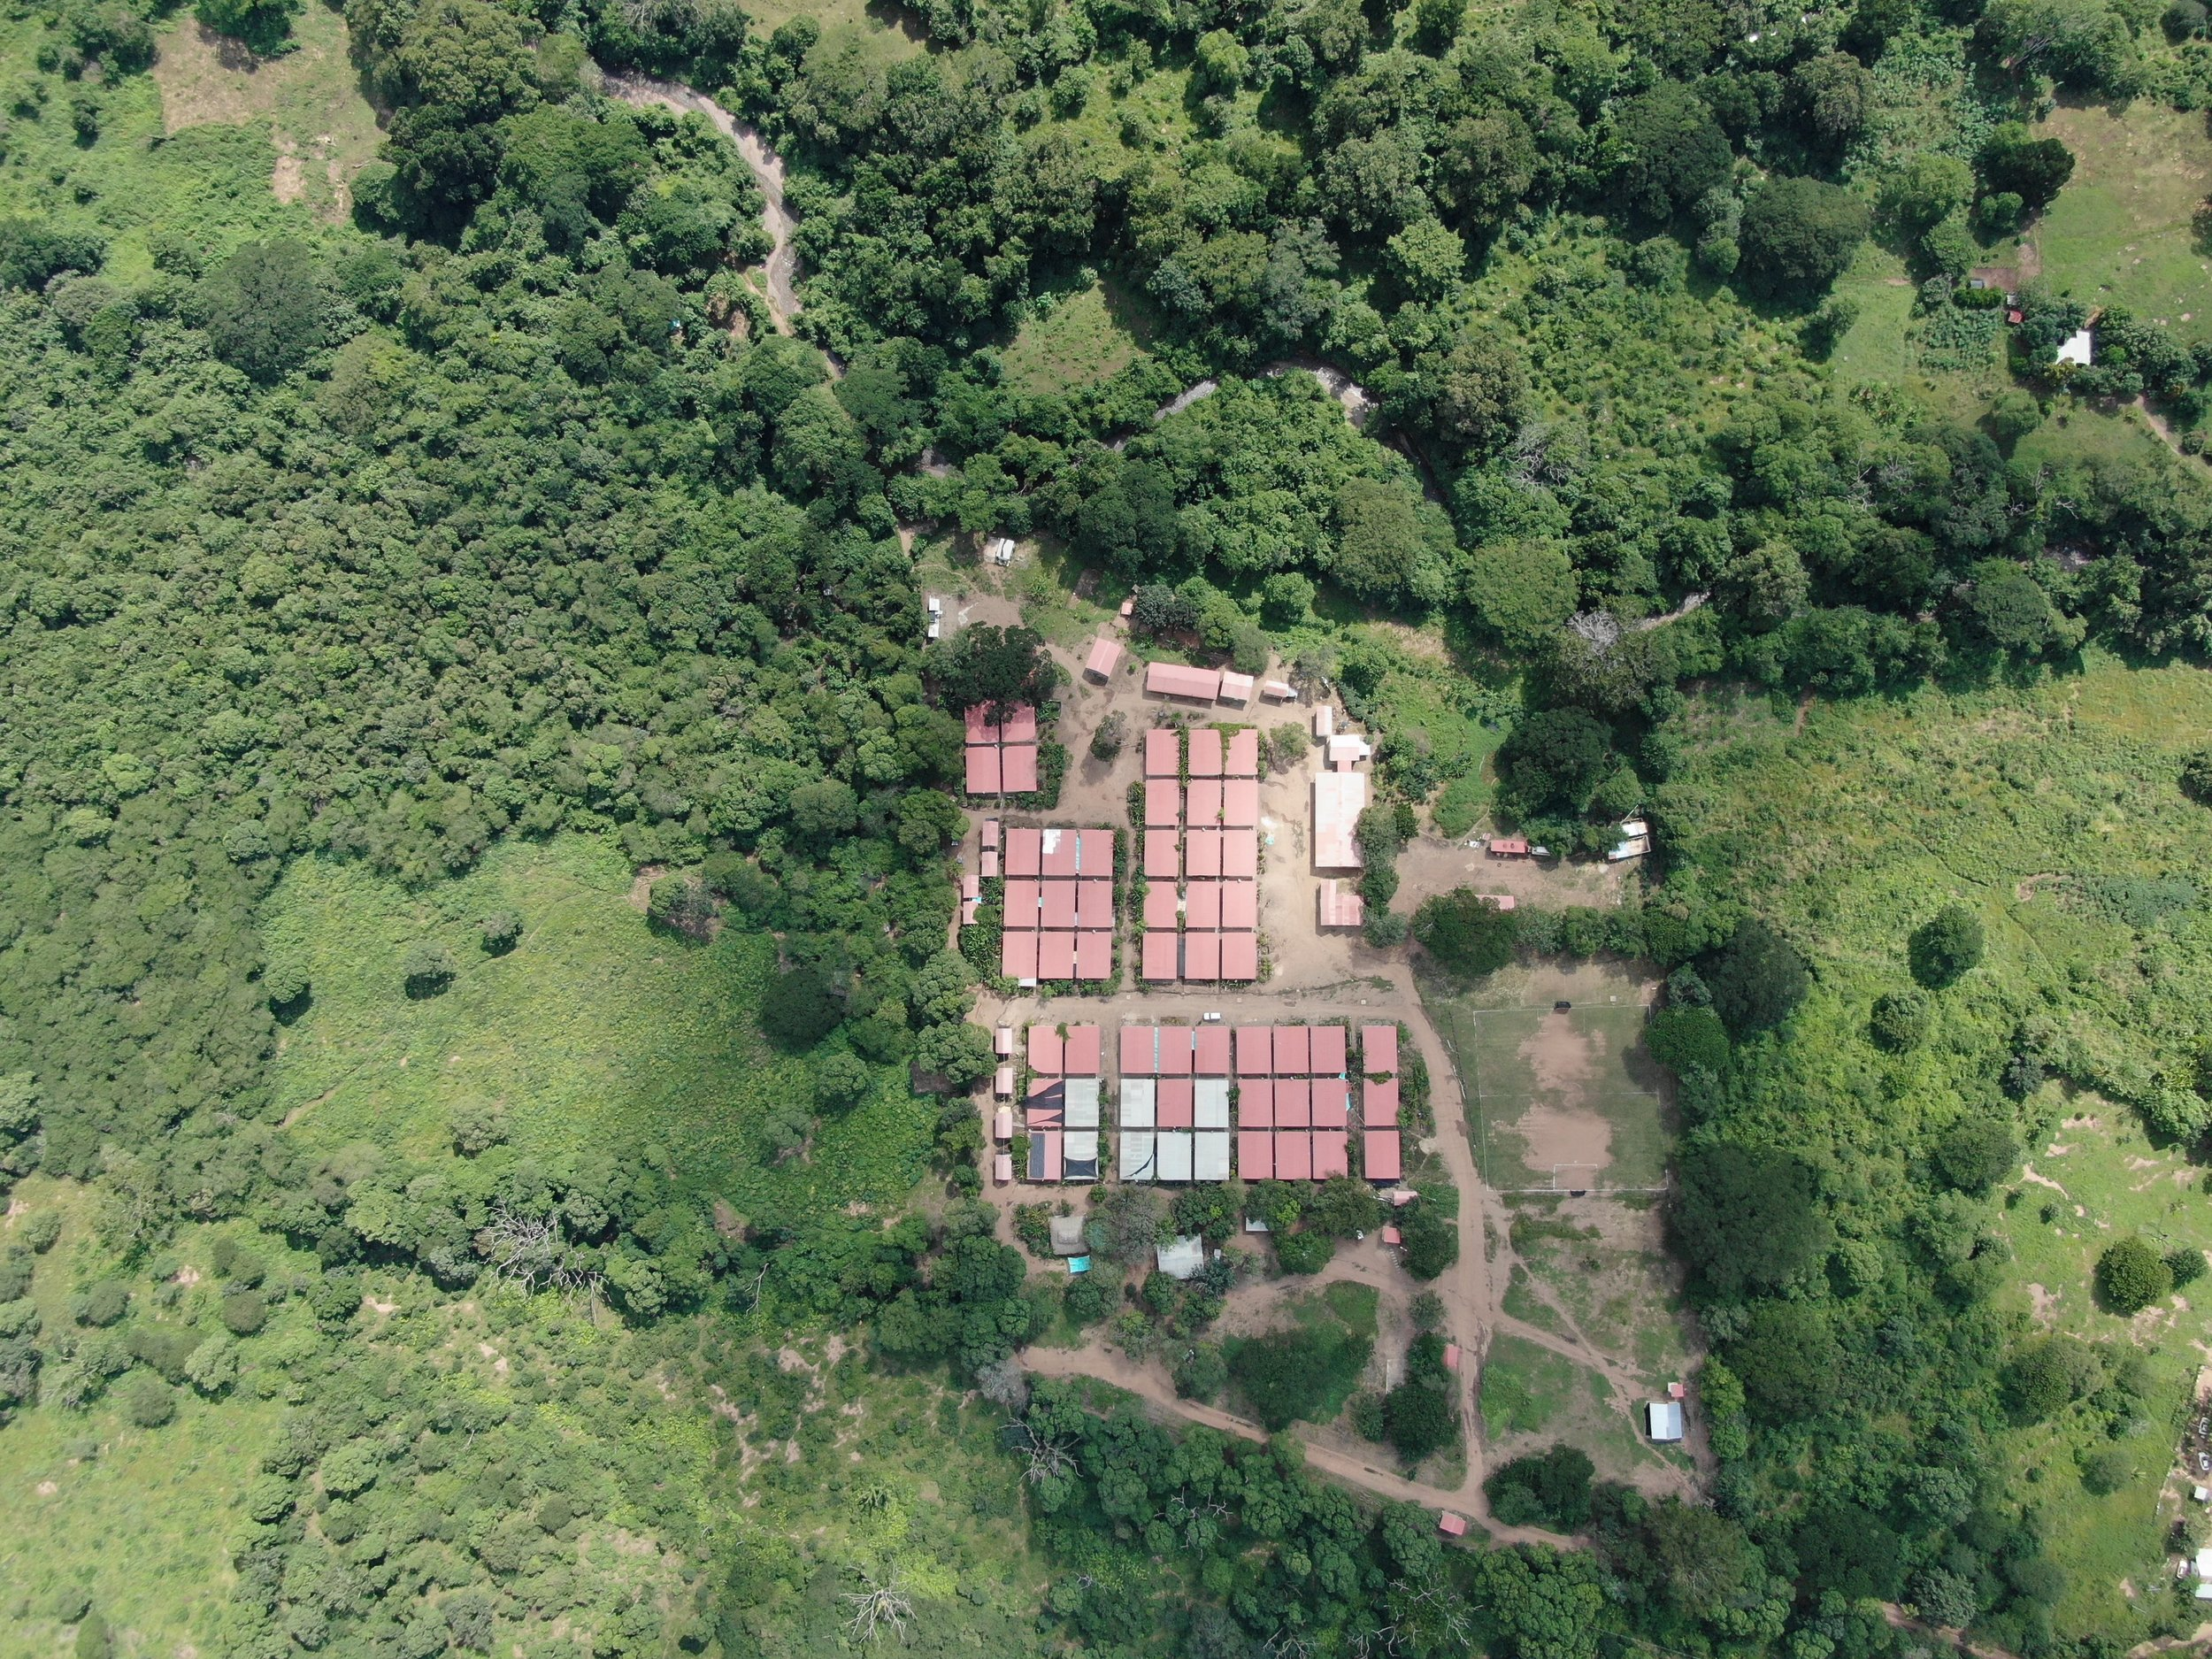 View from above of ETCR Amaury Rodríguez, Colombia